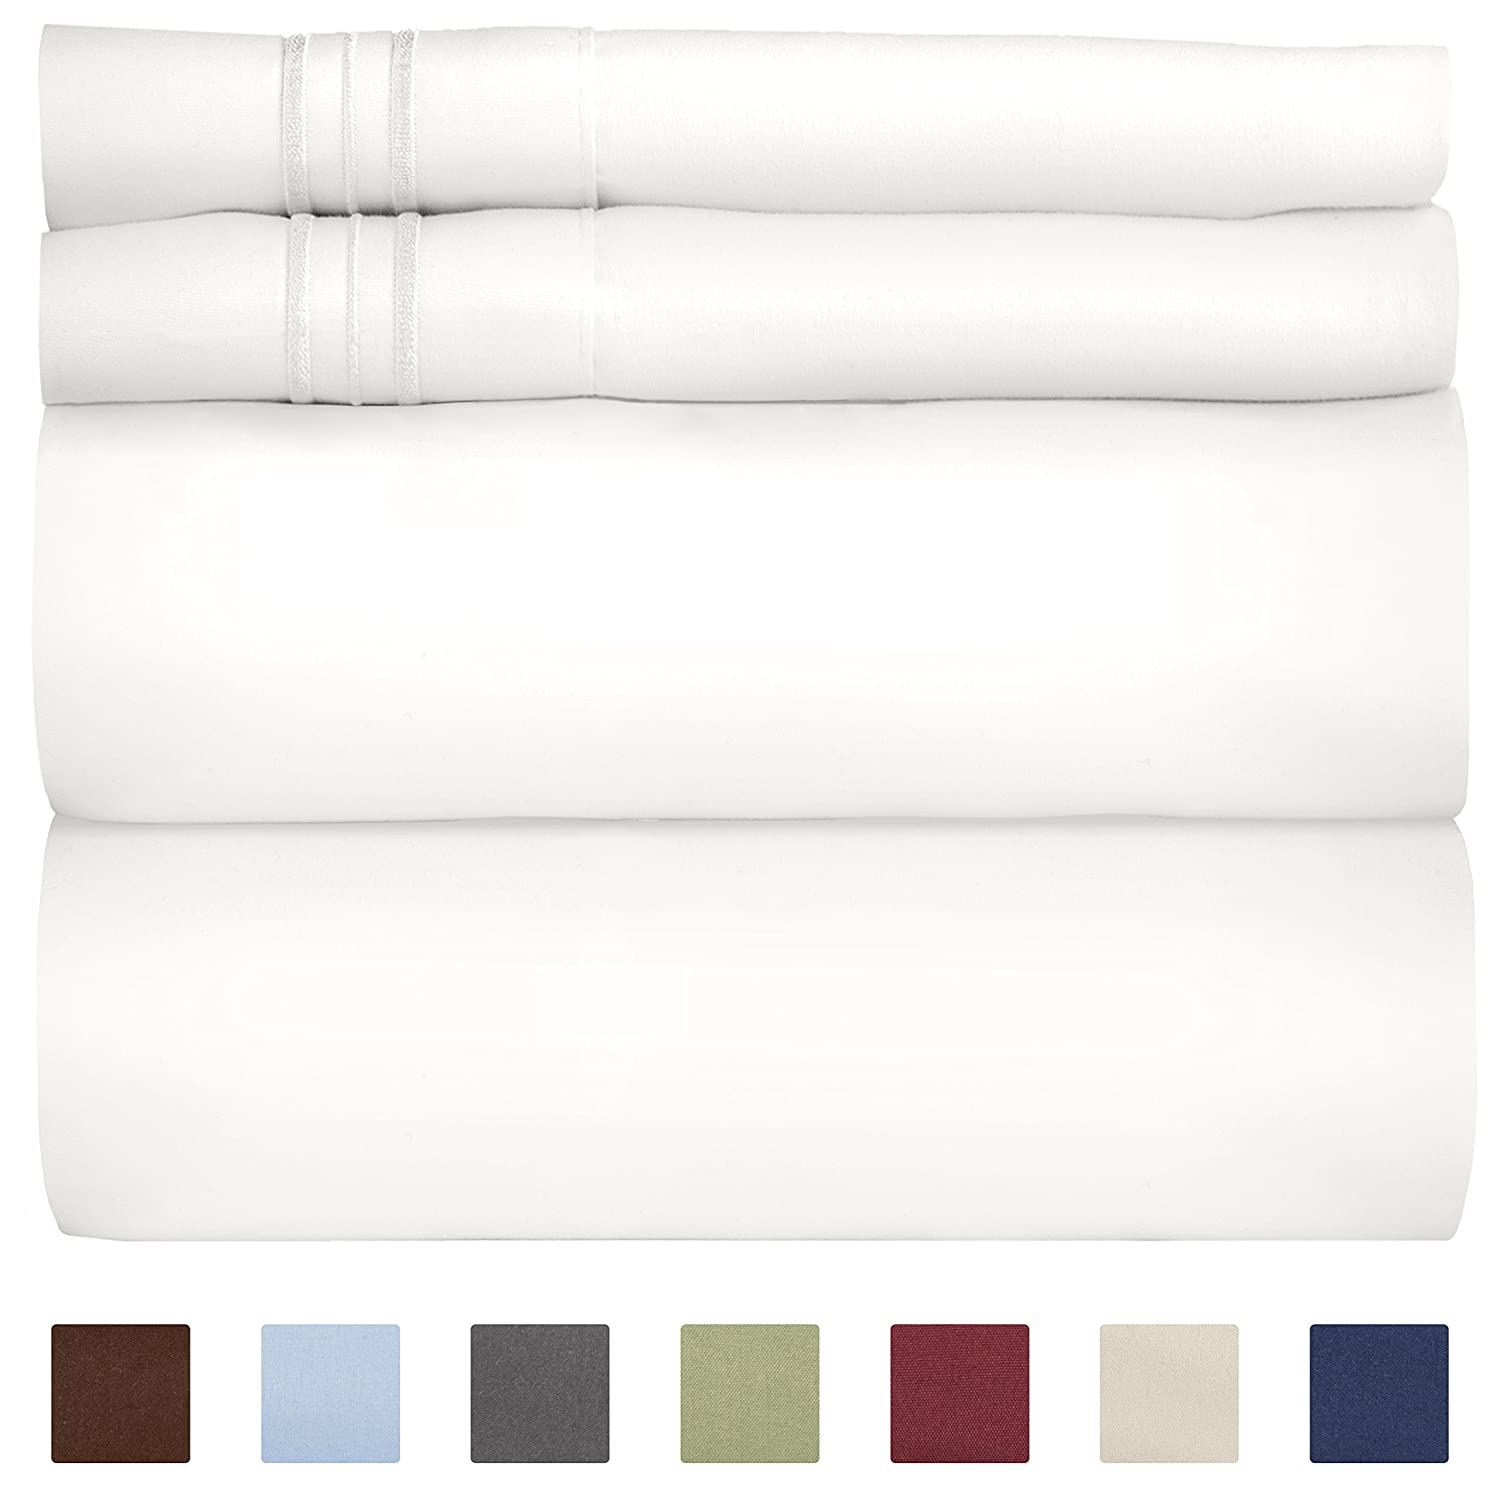 Extra Deep Pocket Sheets - 4 Piece Sheet Set - Deep Pocket Twin Sheets - Extra Deep Pocket Twin Sheets - Deep Fitted Sheet Set - Extra Deep Pocket Twin Size Sheets - Easily Fits Extra Deep Mattresses